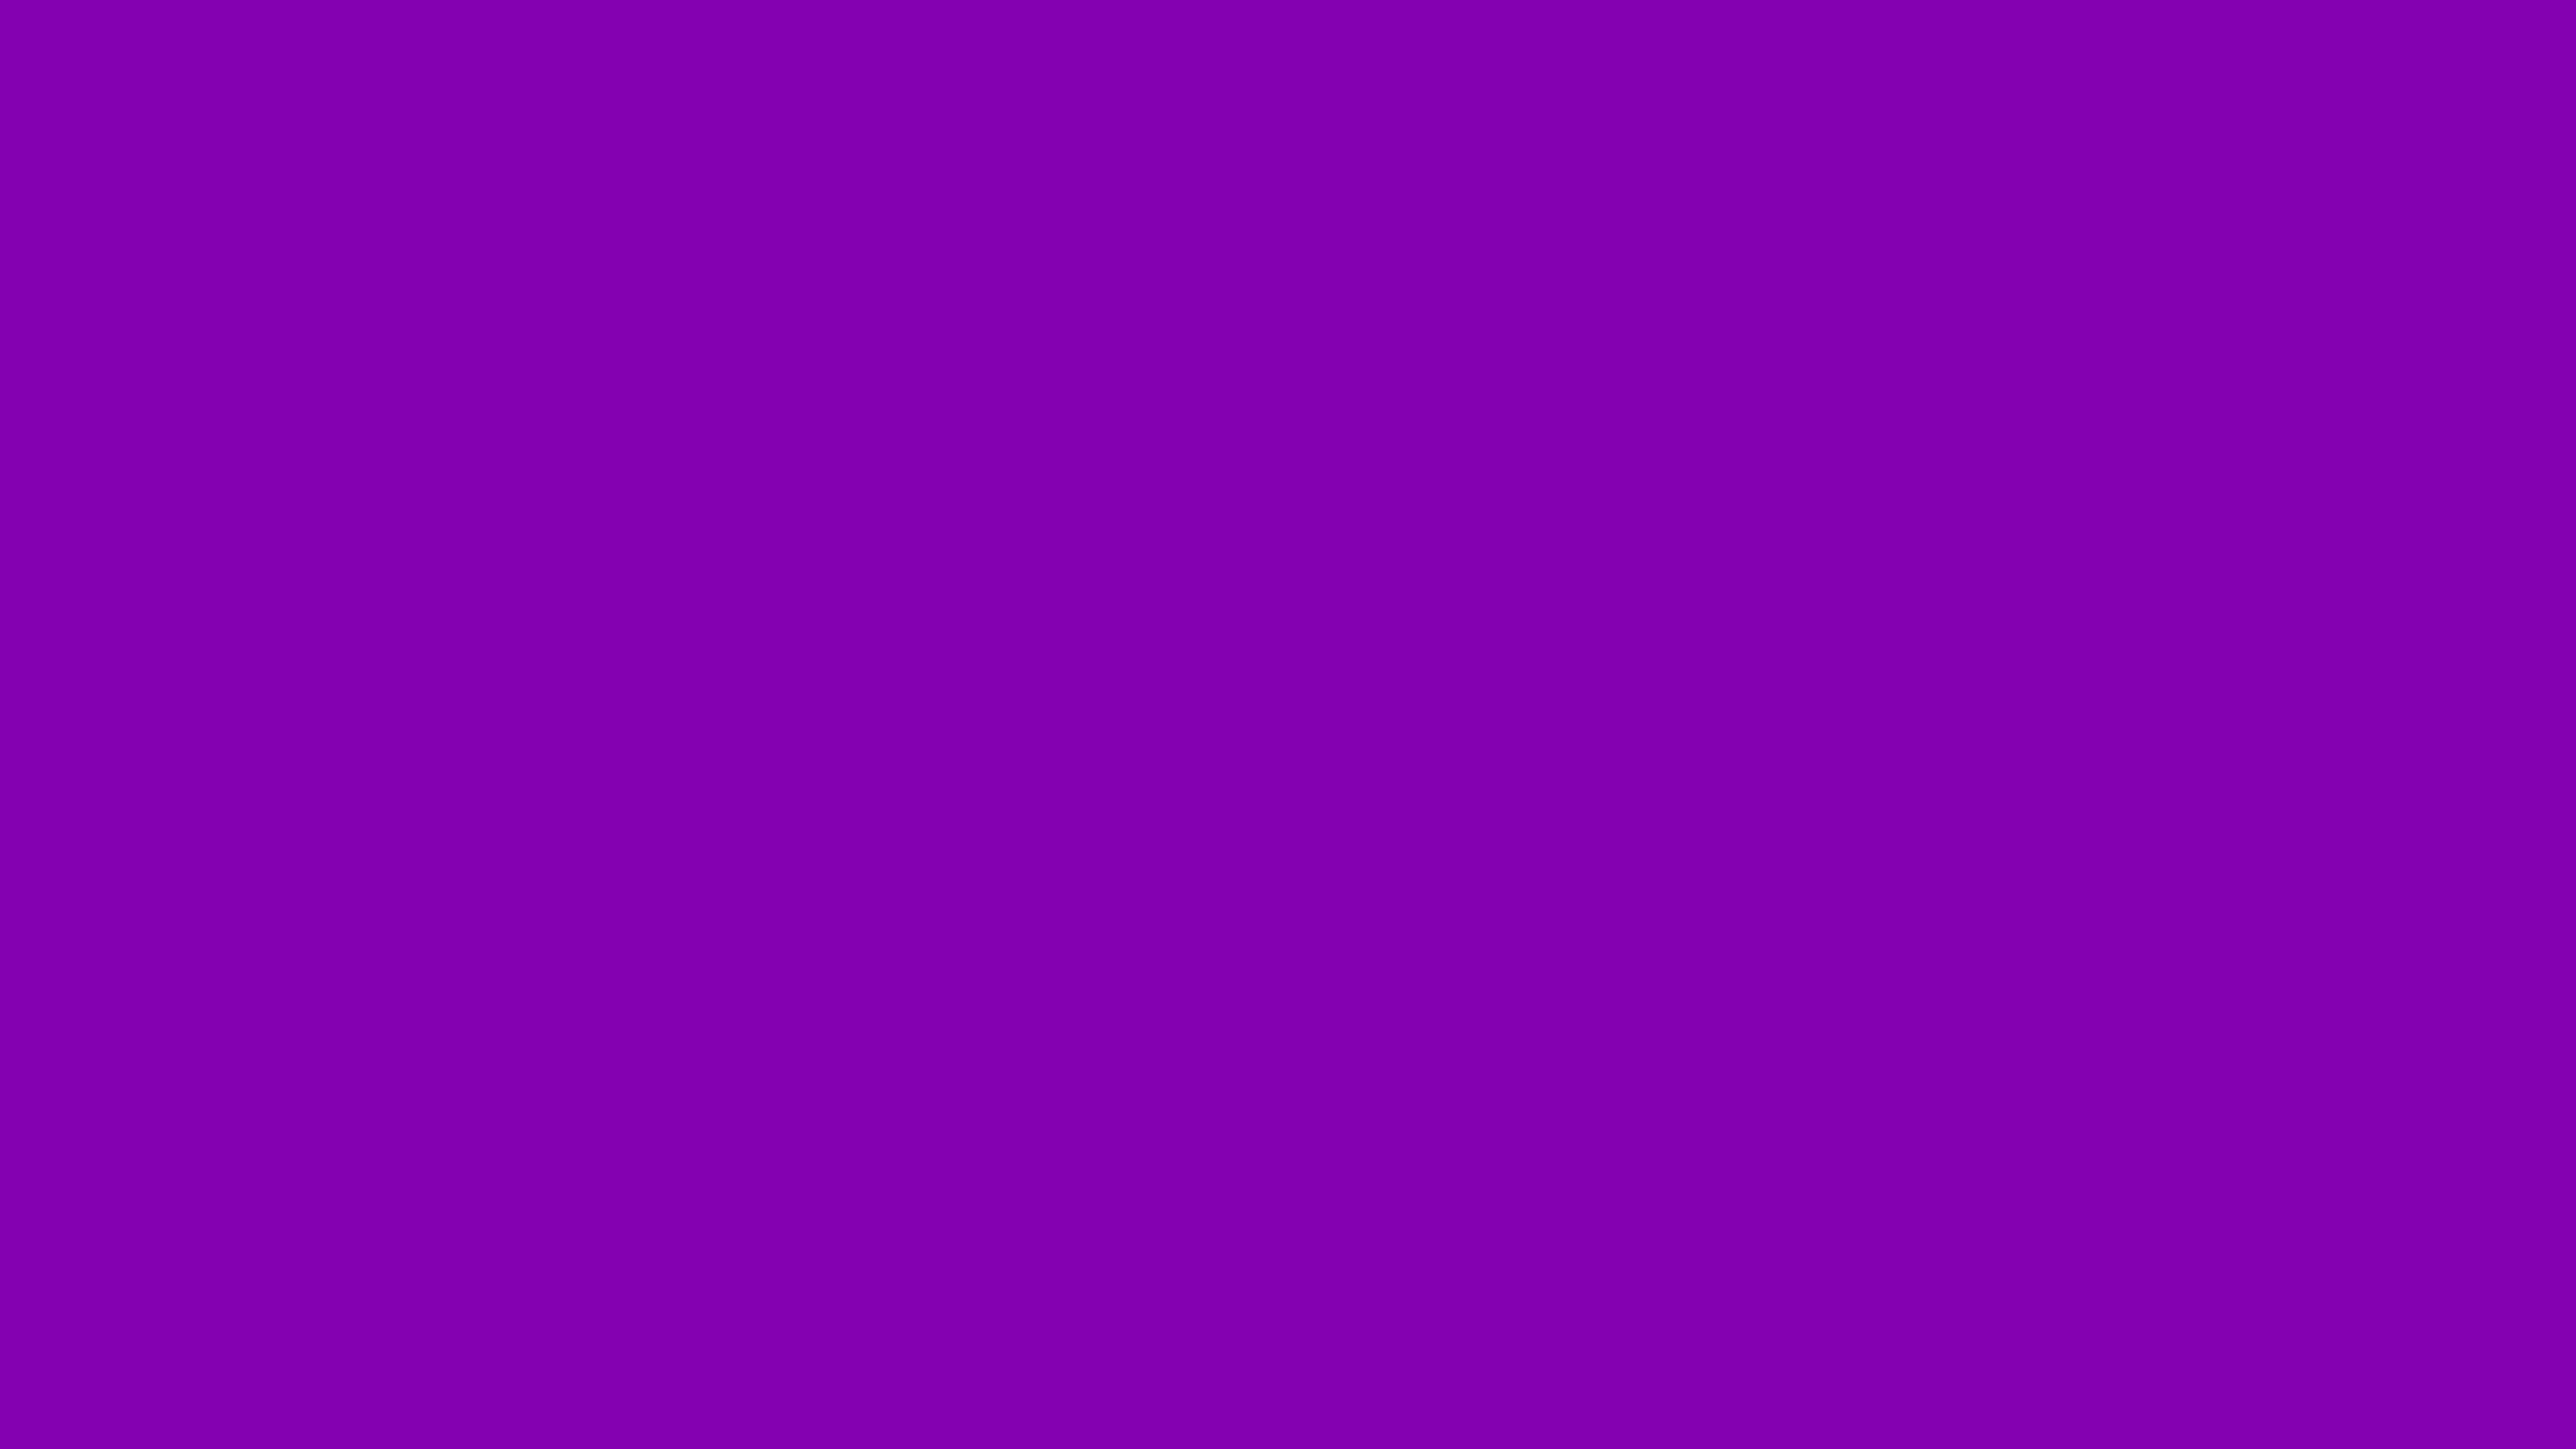 3840x2160 Violet RYB Solid Color Background